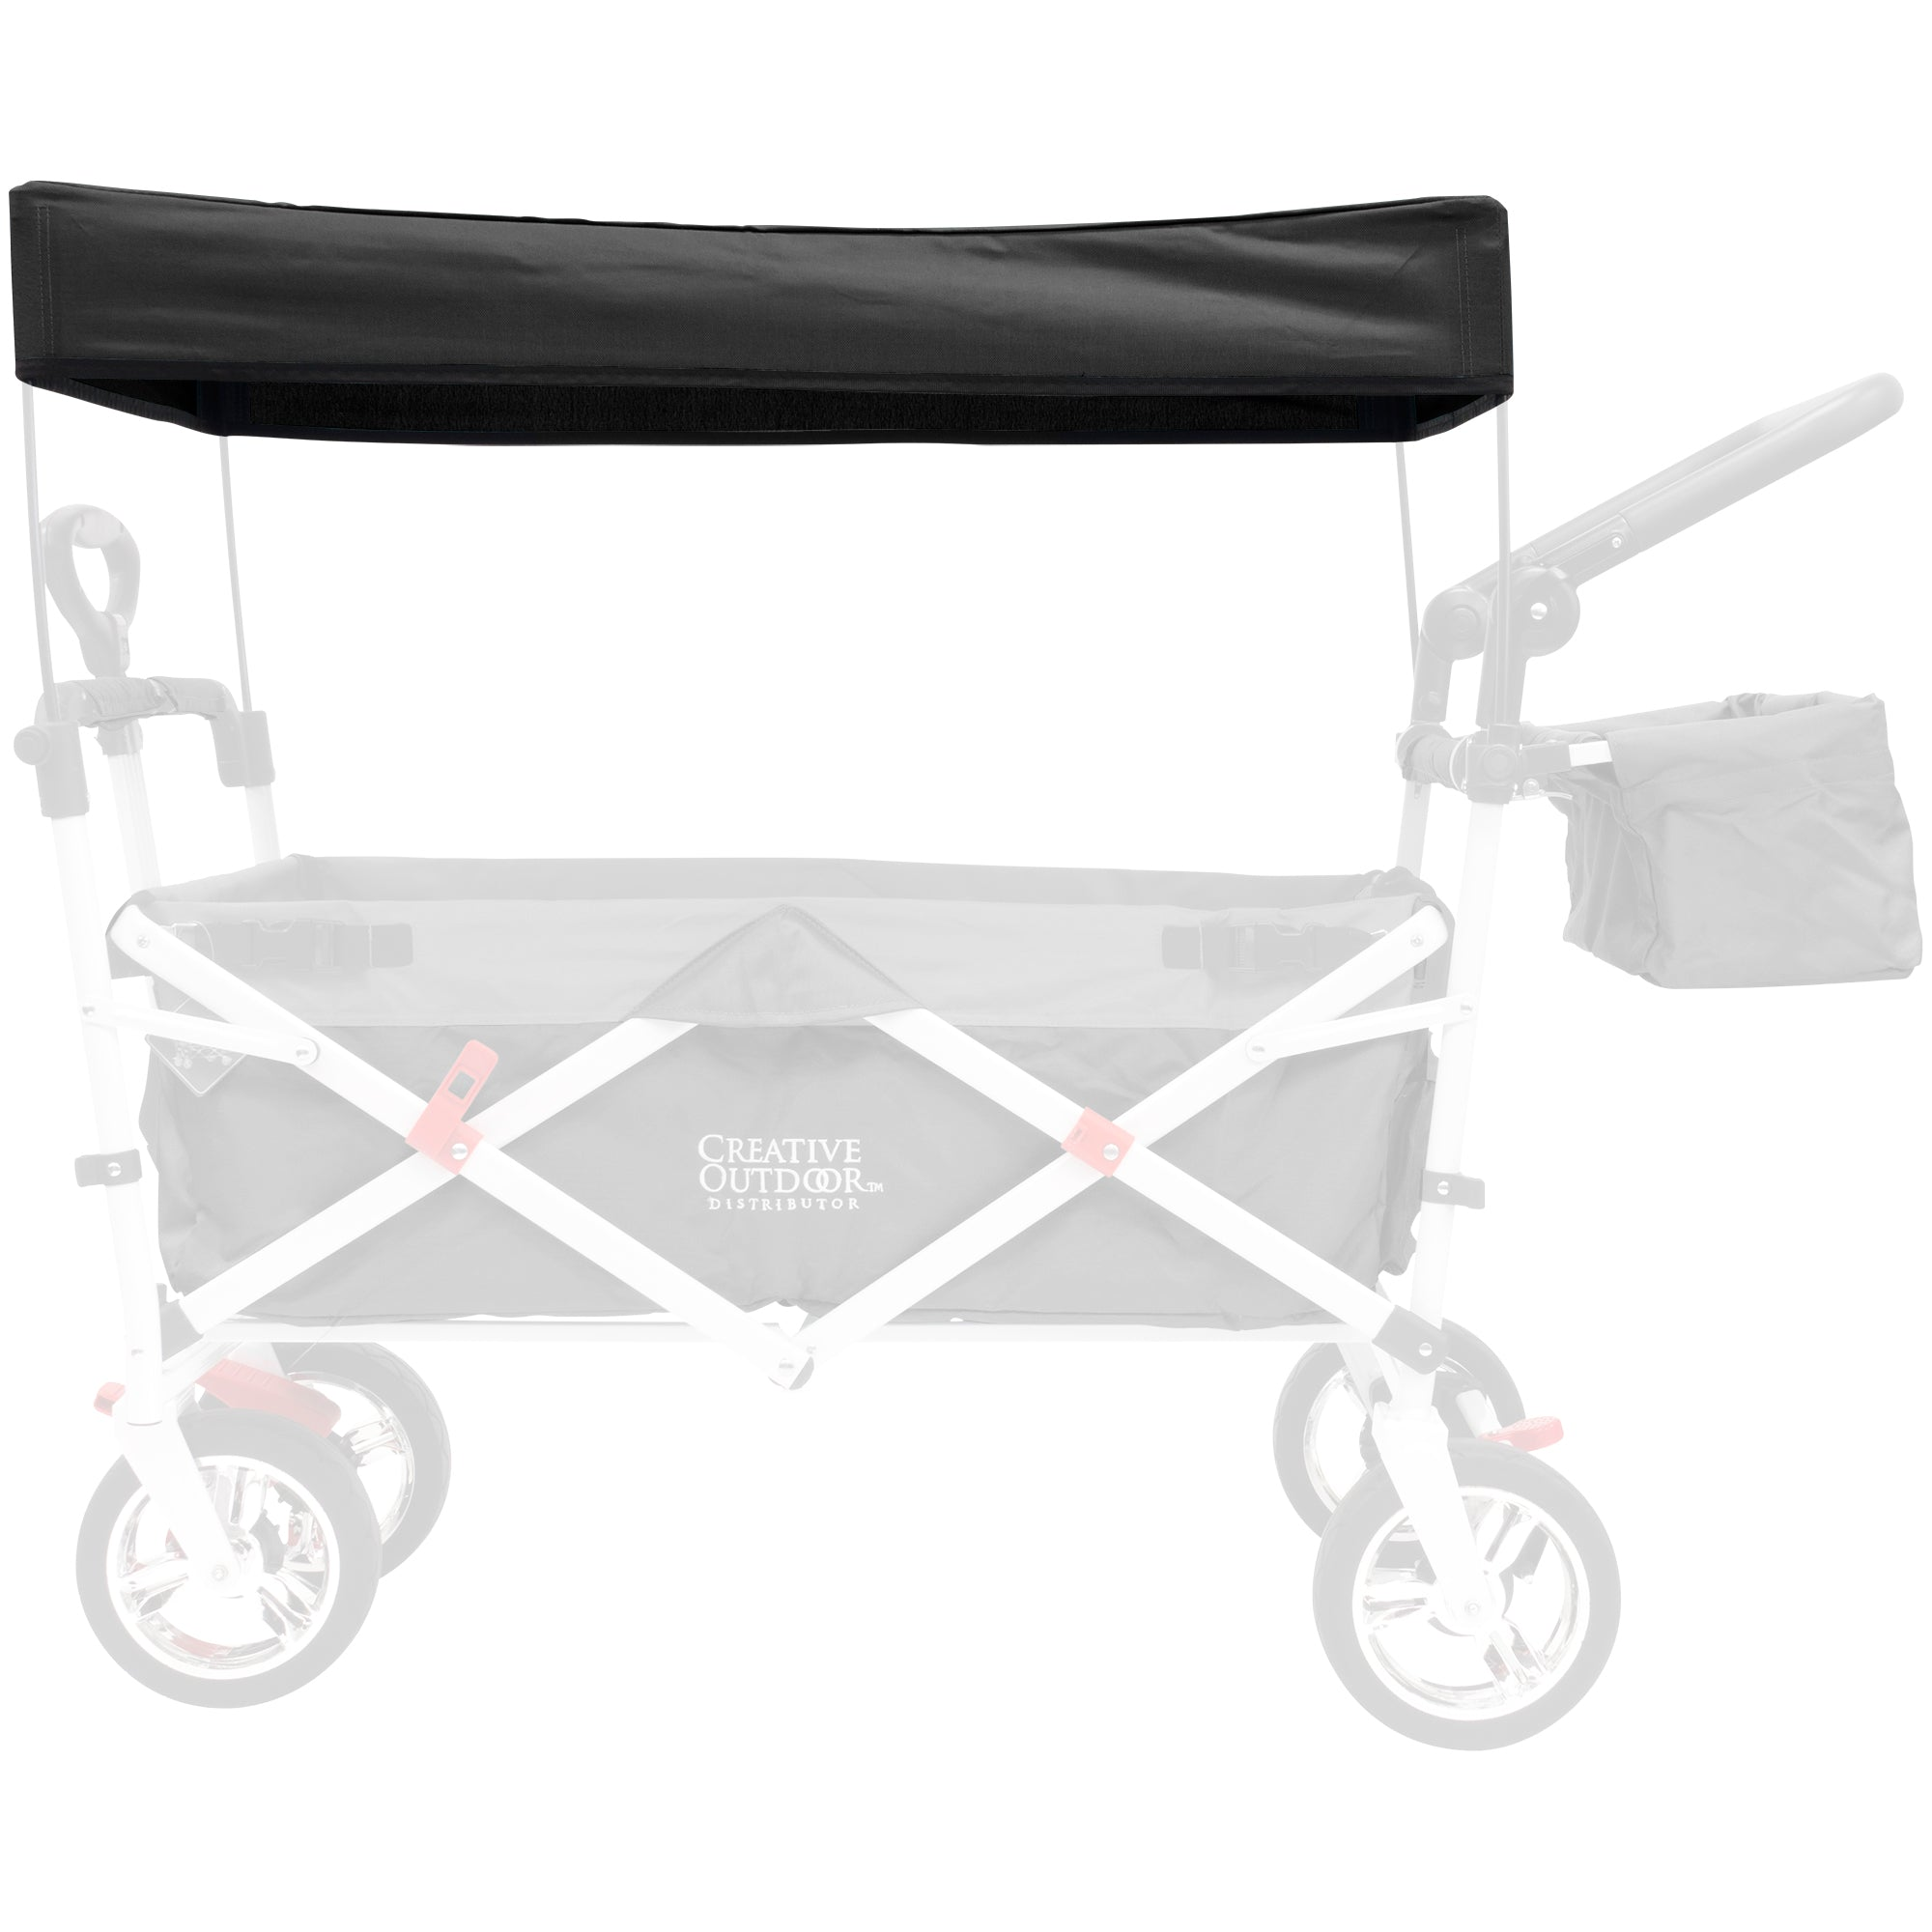 Silver Series Push Pull Folding Wagon Teal Replacement Canopy - Black